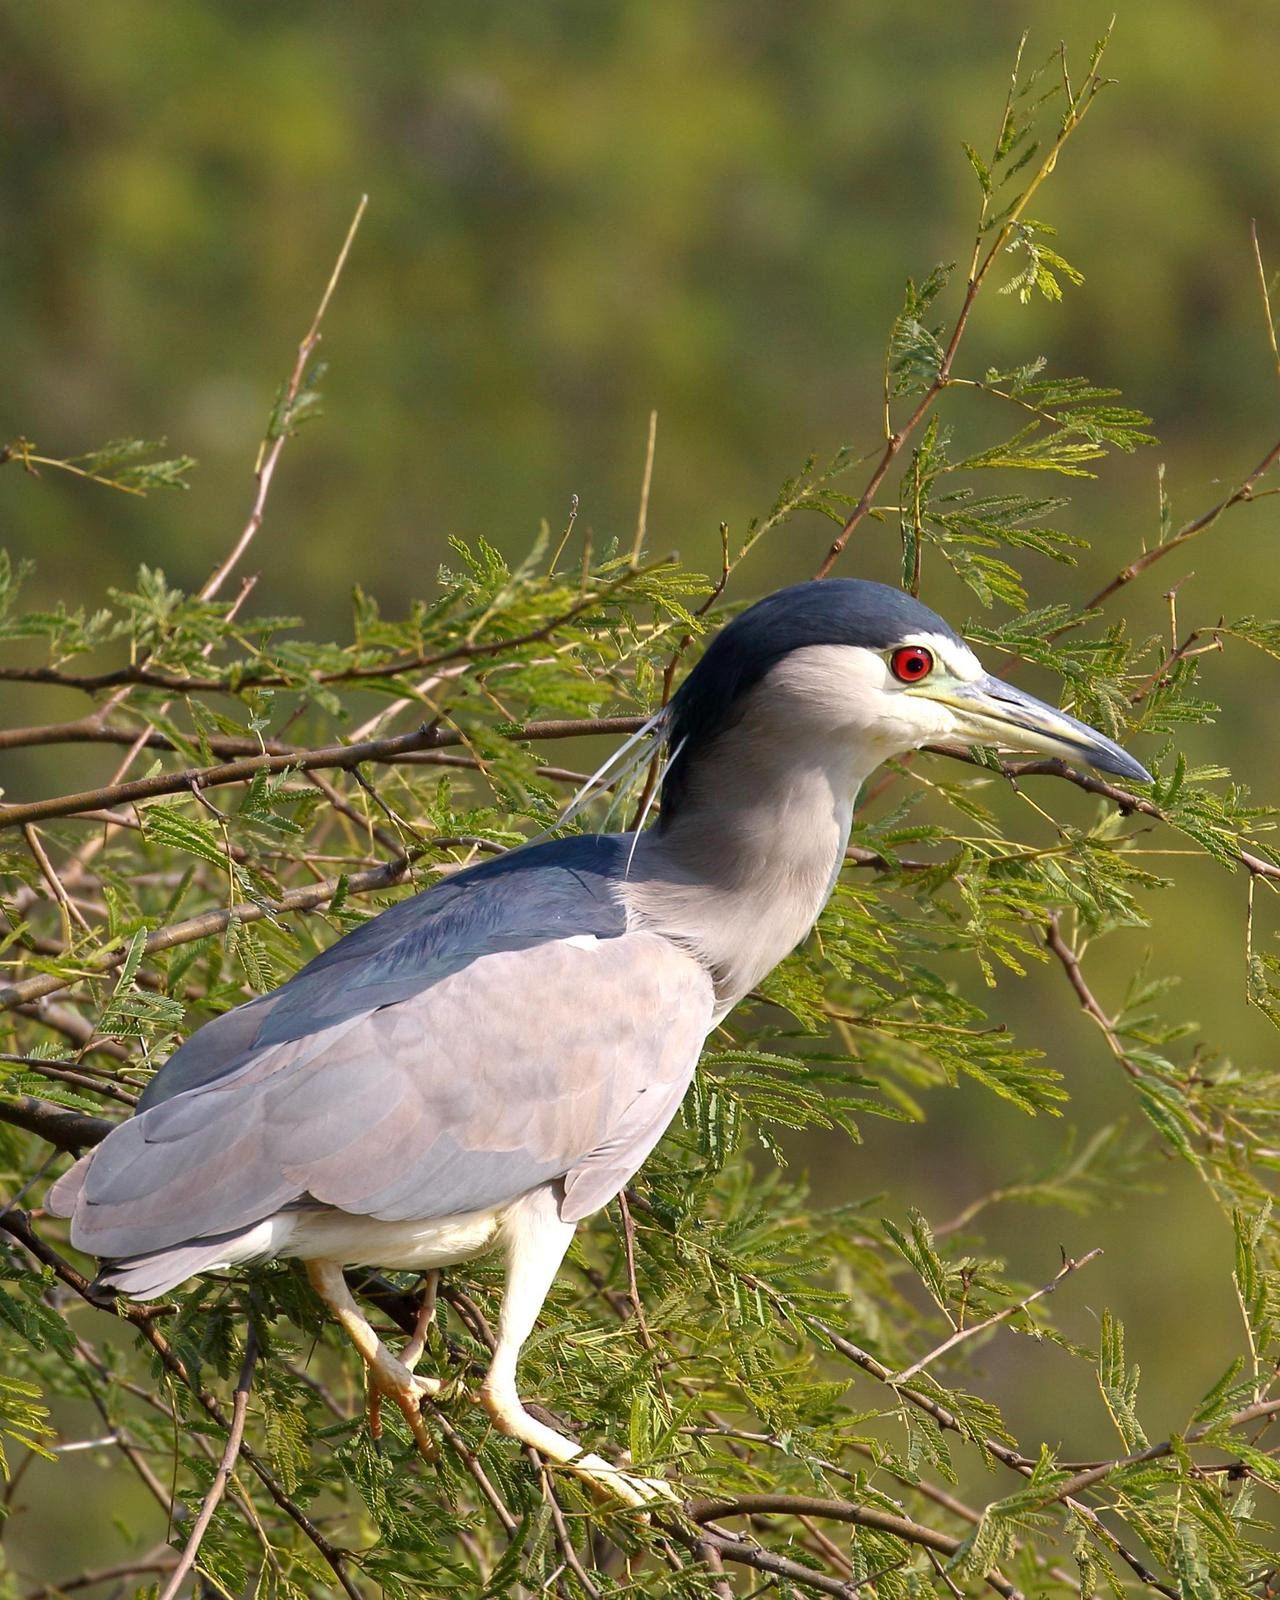 Black-crowned Night-Heron Photo by Rahul Kaushik